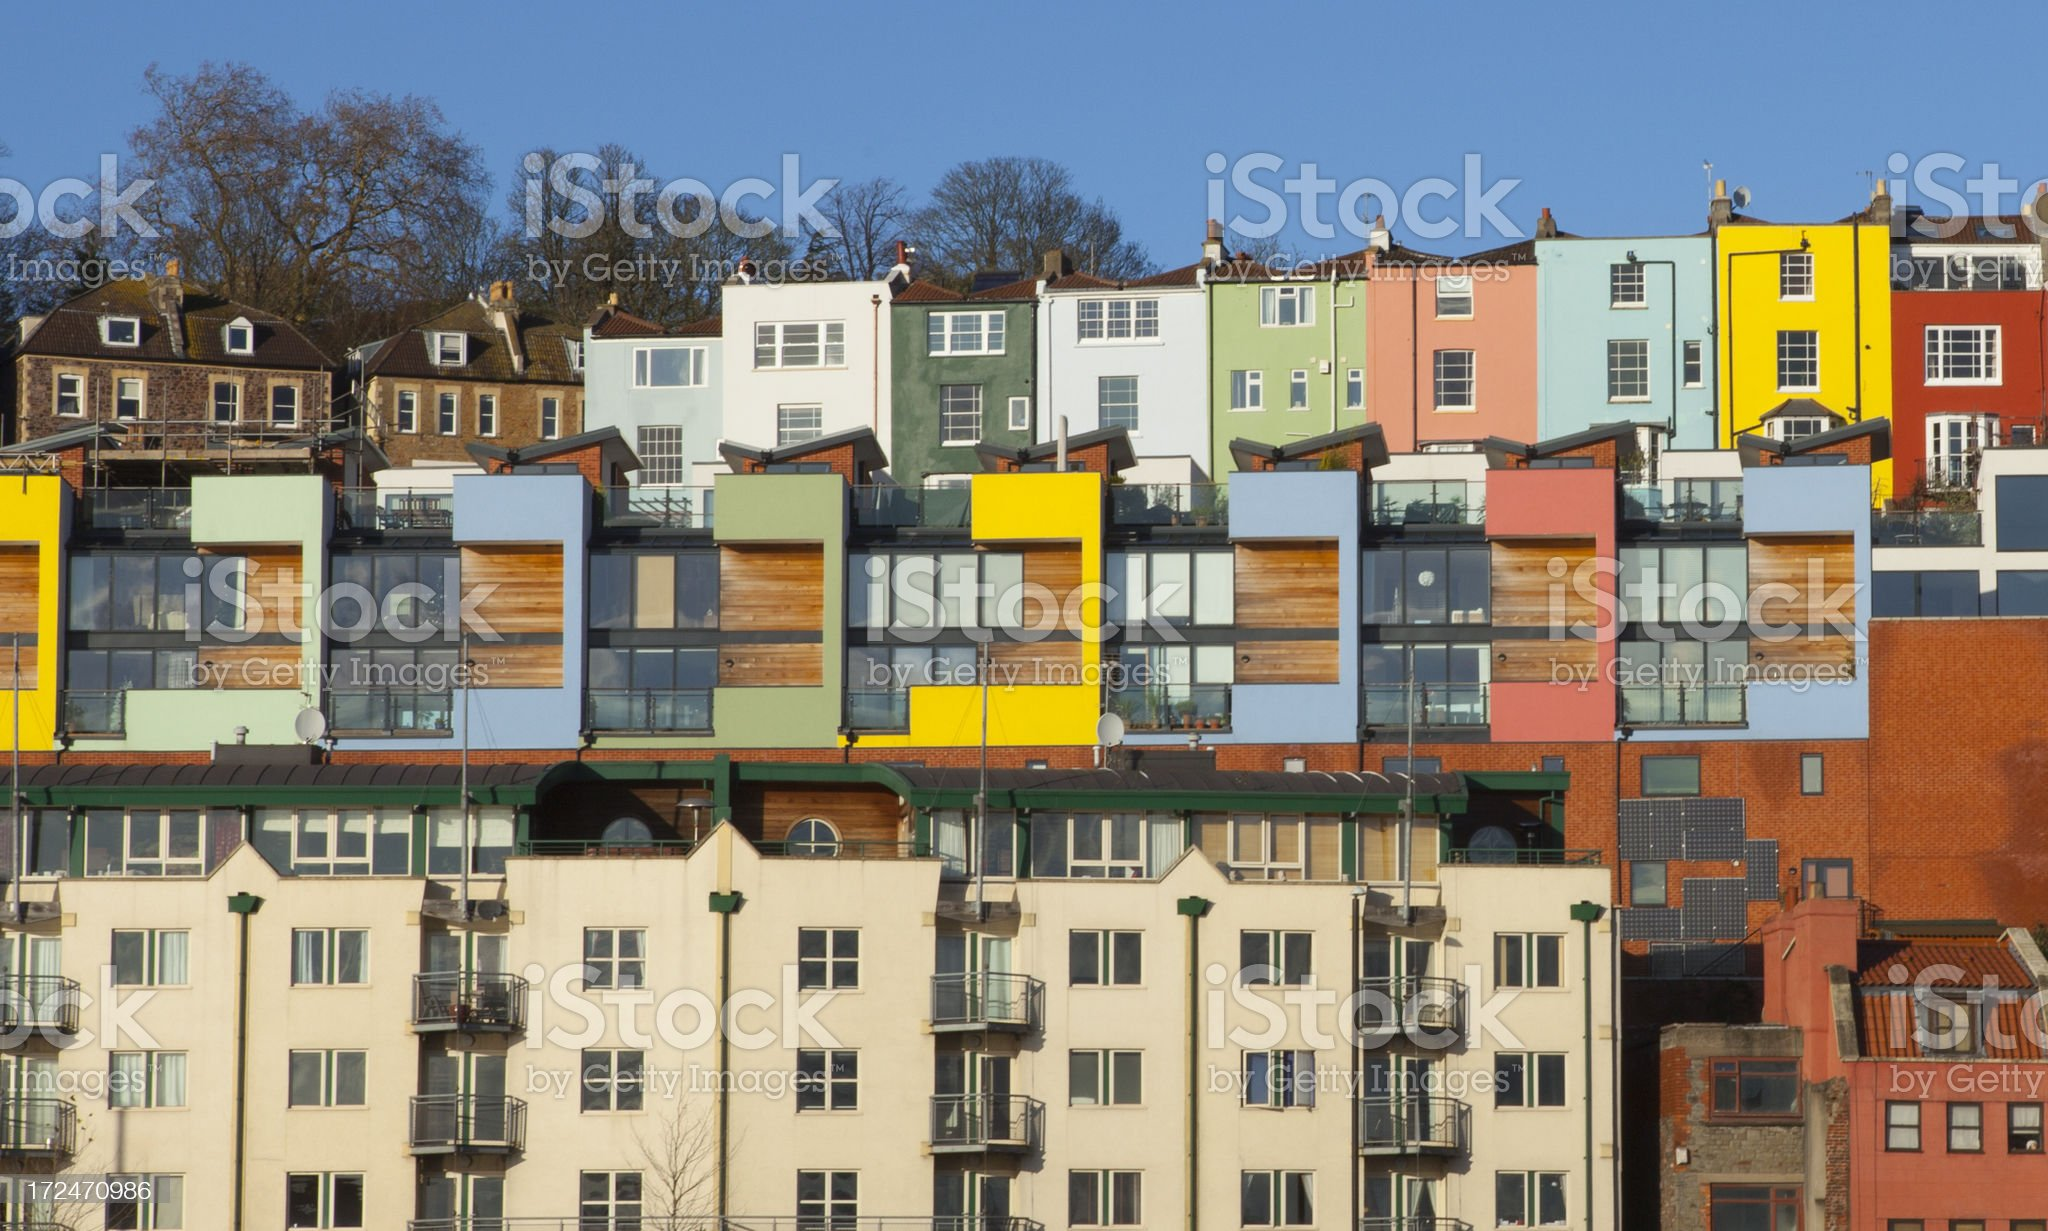 High Density Living in Bristol, UK royalty-free stock photo